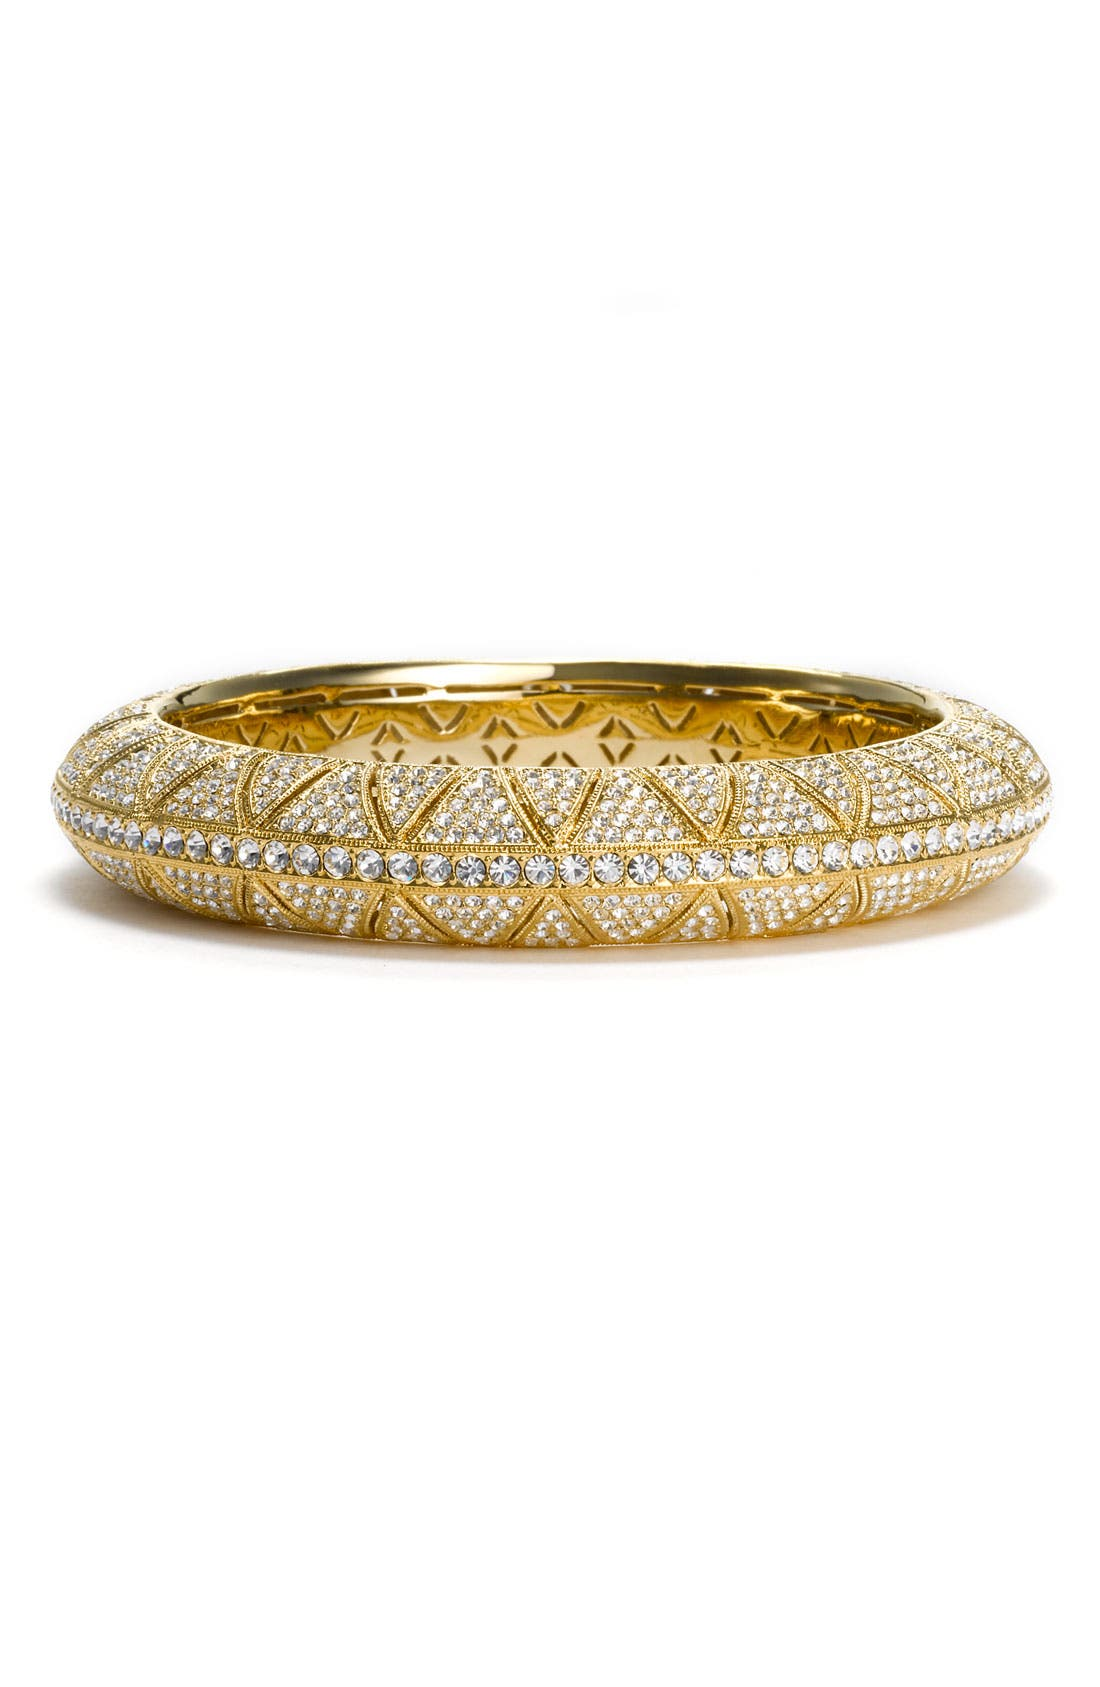 Alternate Image 1 Selected - Nadri 'Mosaica' Large Pavé Bangle (Nordstrom Exclusive)